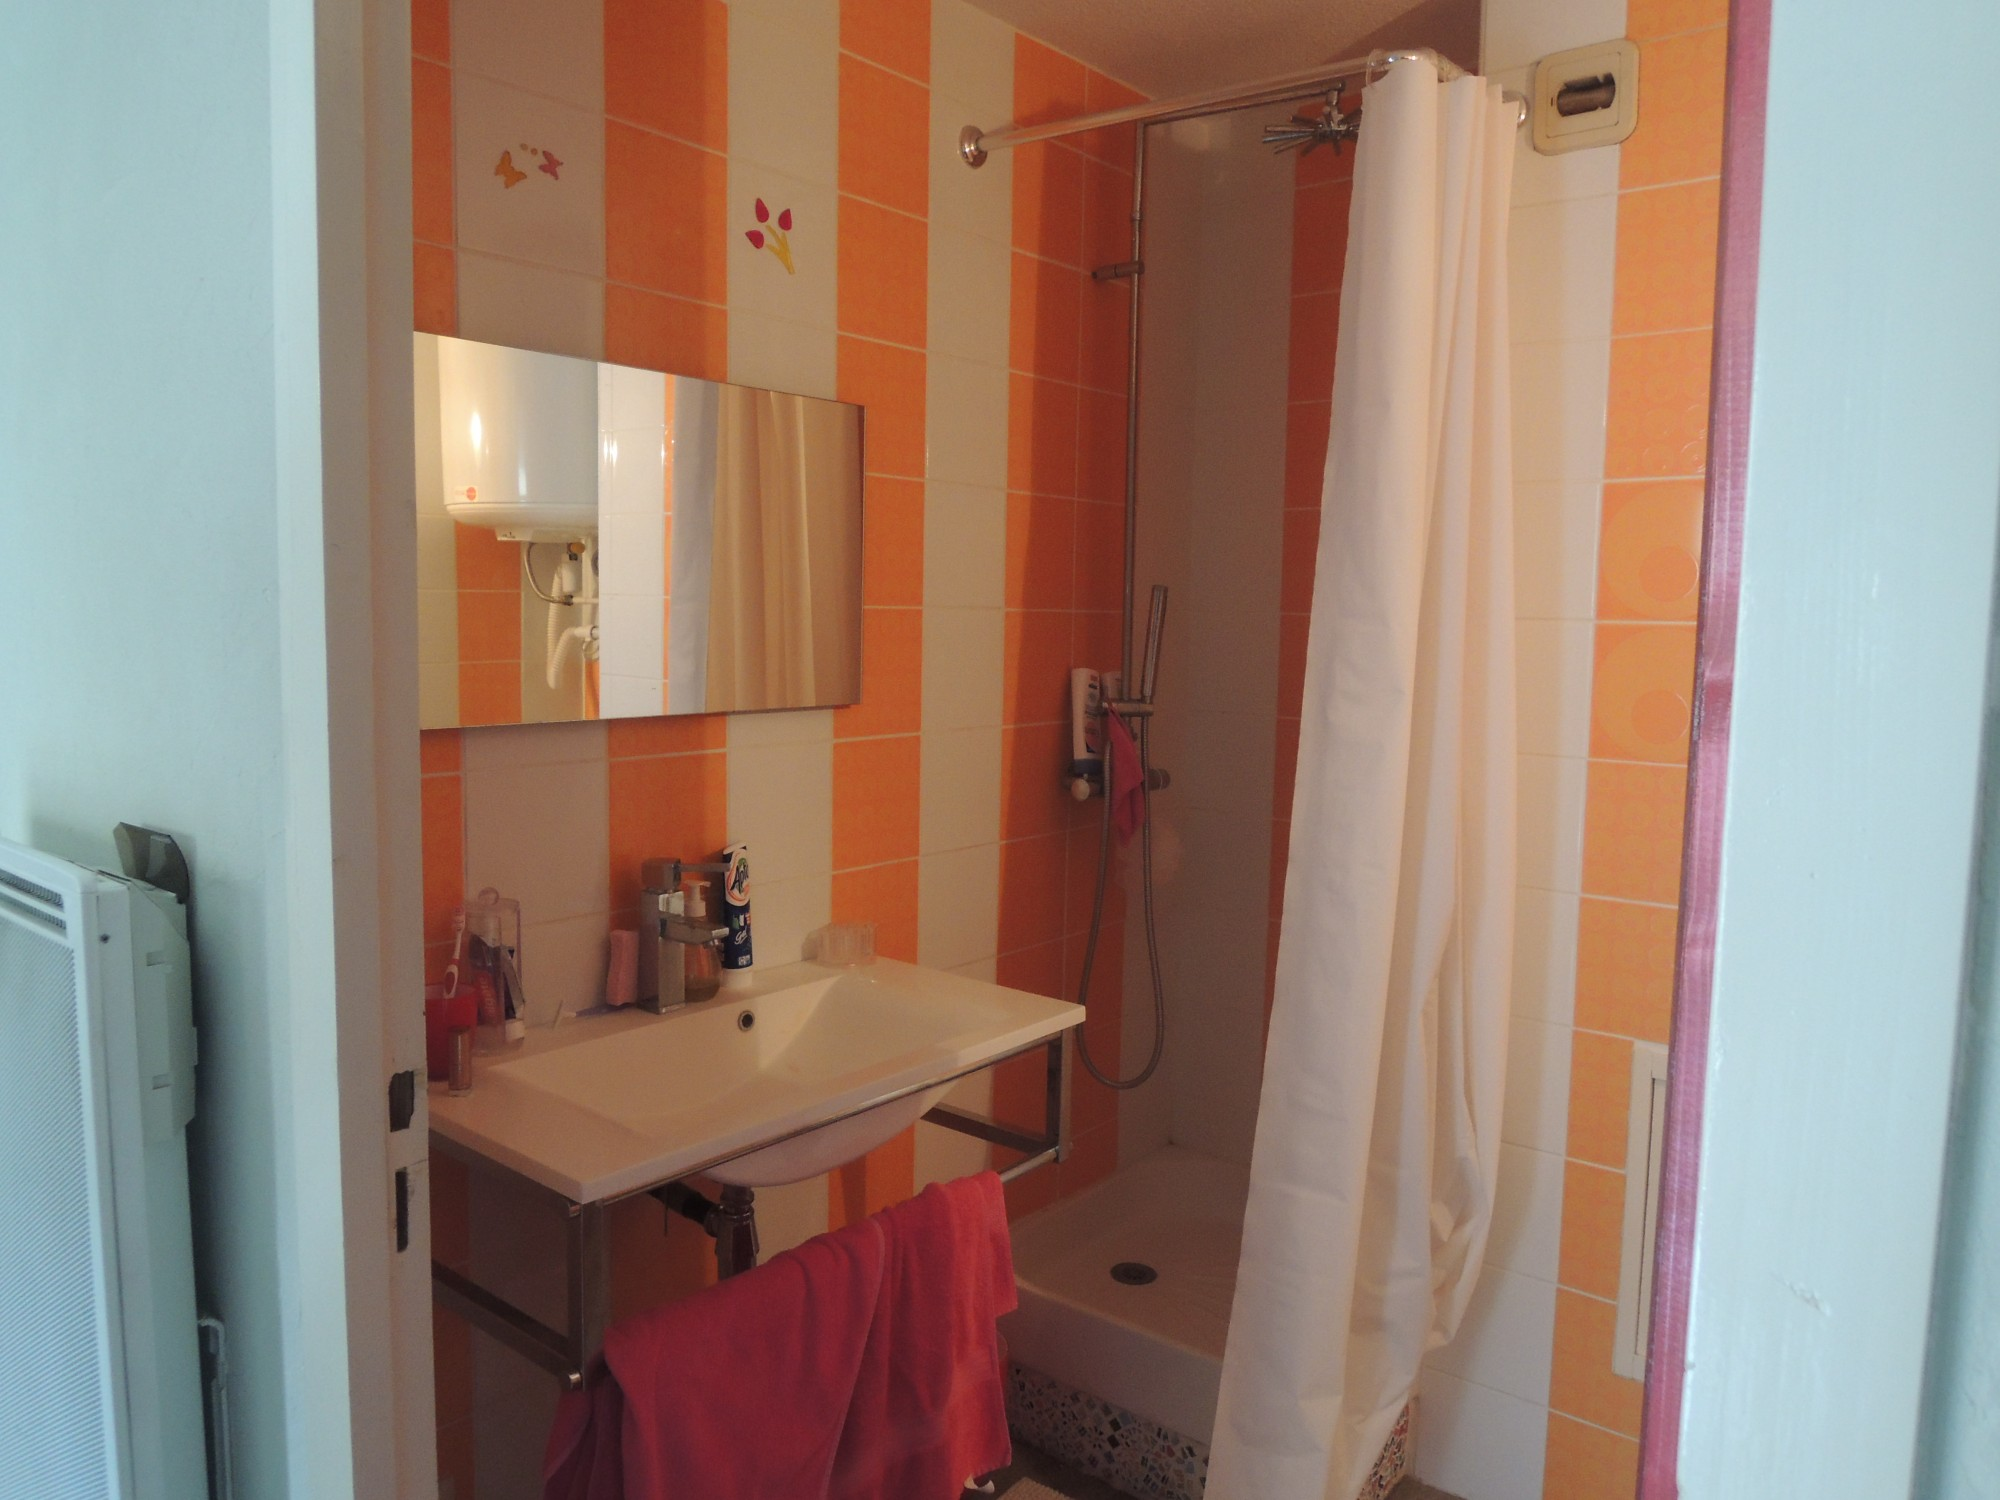 Location studio t1 f1 bordeaux chartrons bru immobilier for Appartement bordeaux chartrons location